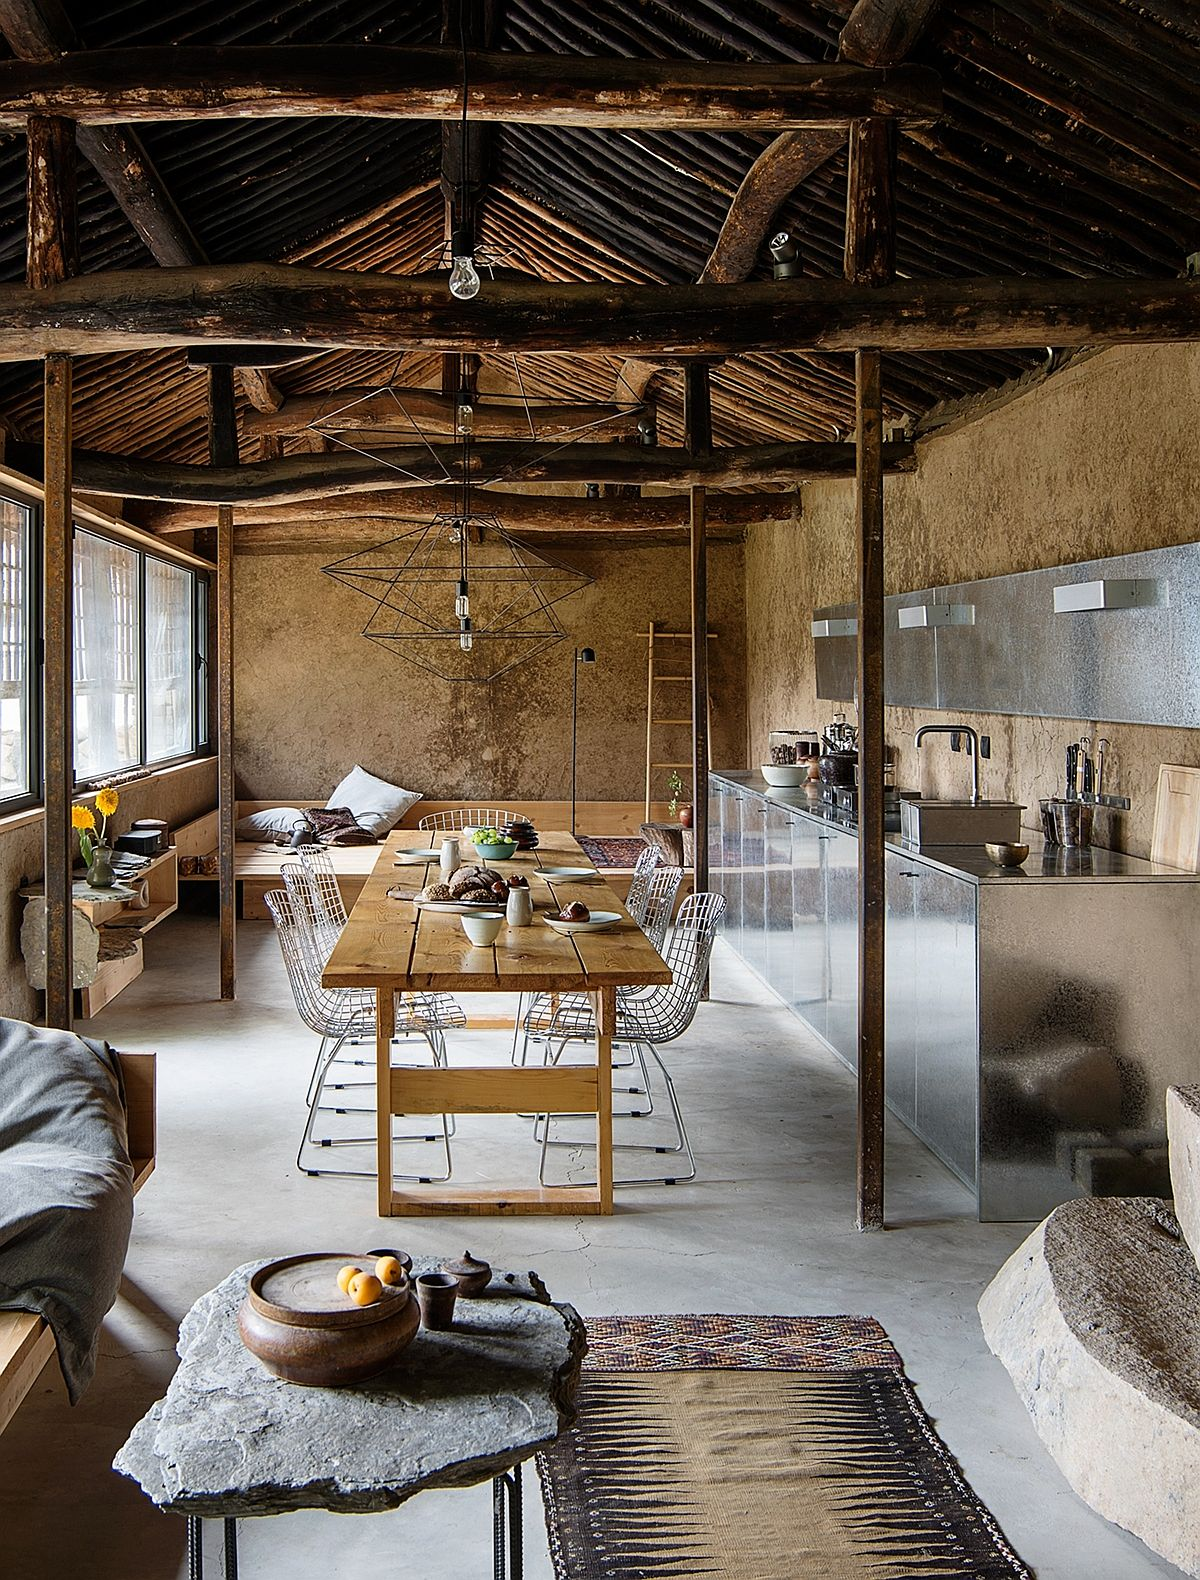 Studio Cottage Giving Abandoned Rural Homes An Aesthetic New Life